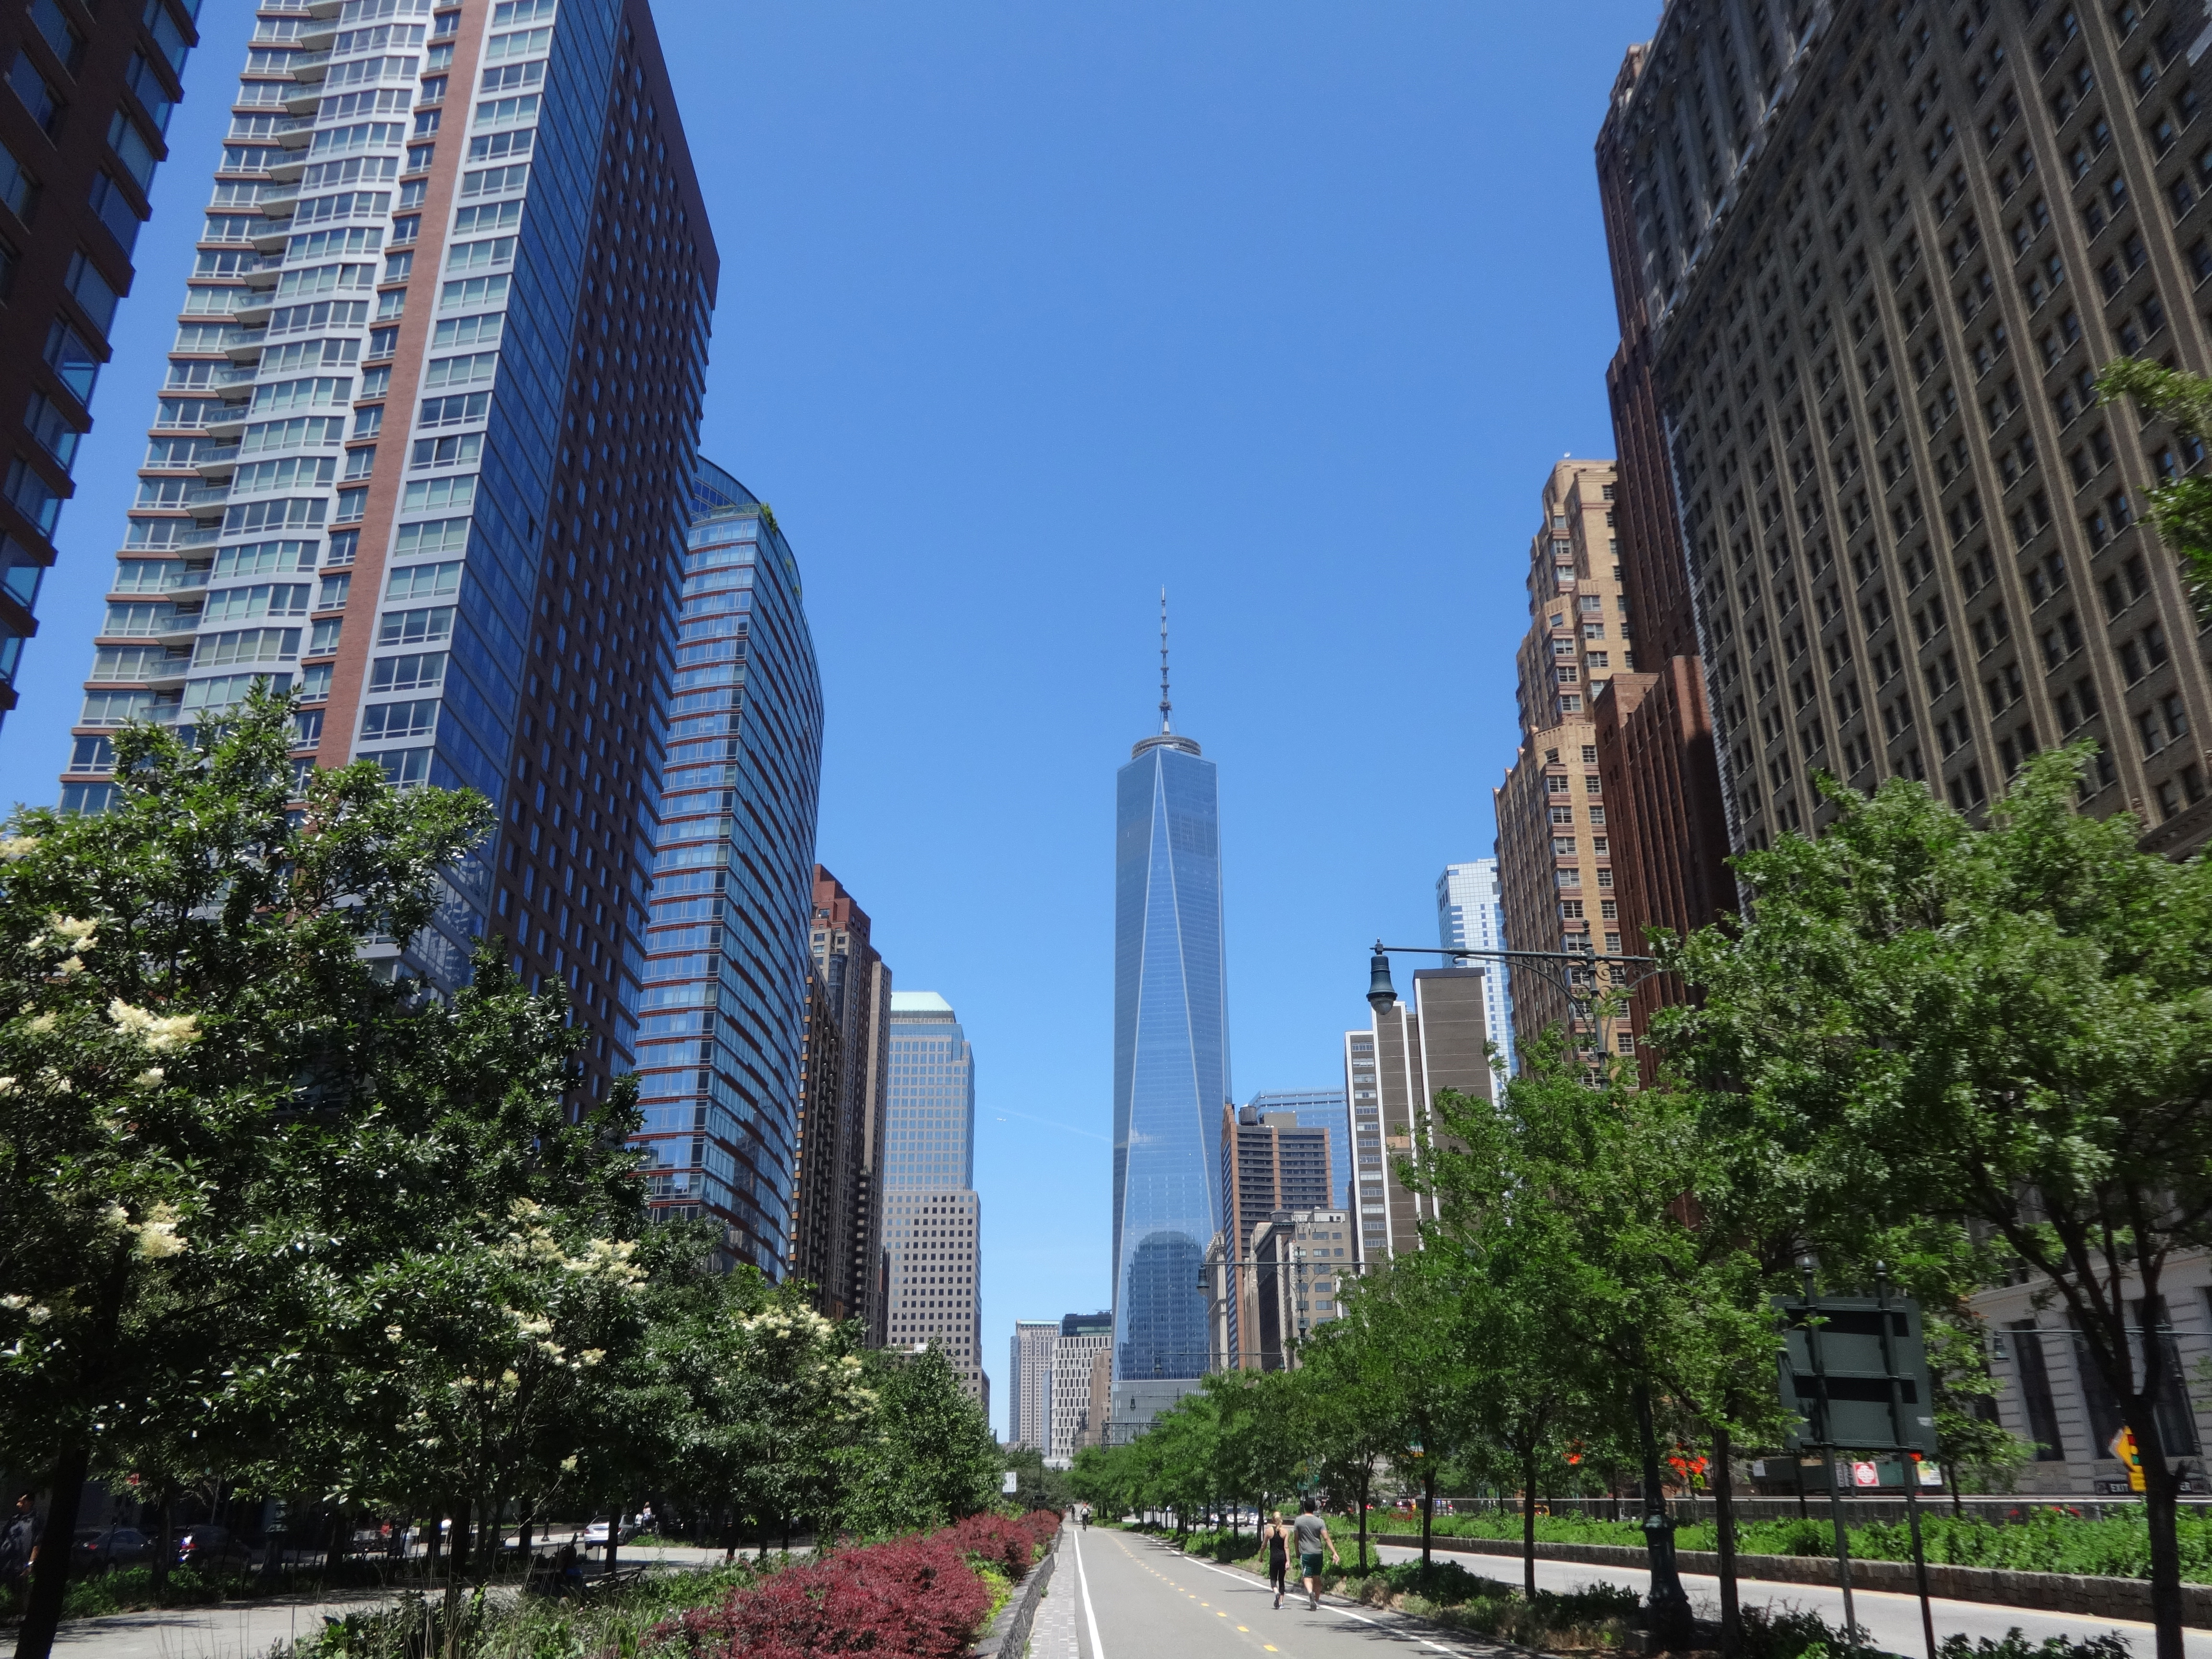 Freedom Tower and canyon of apartments in BPC 6-15-2014